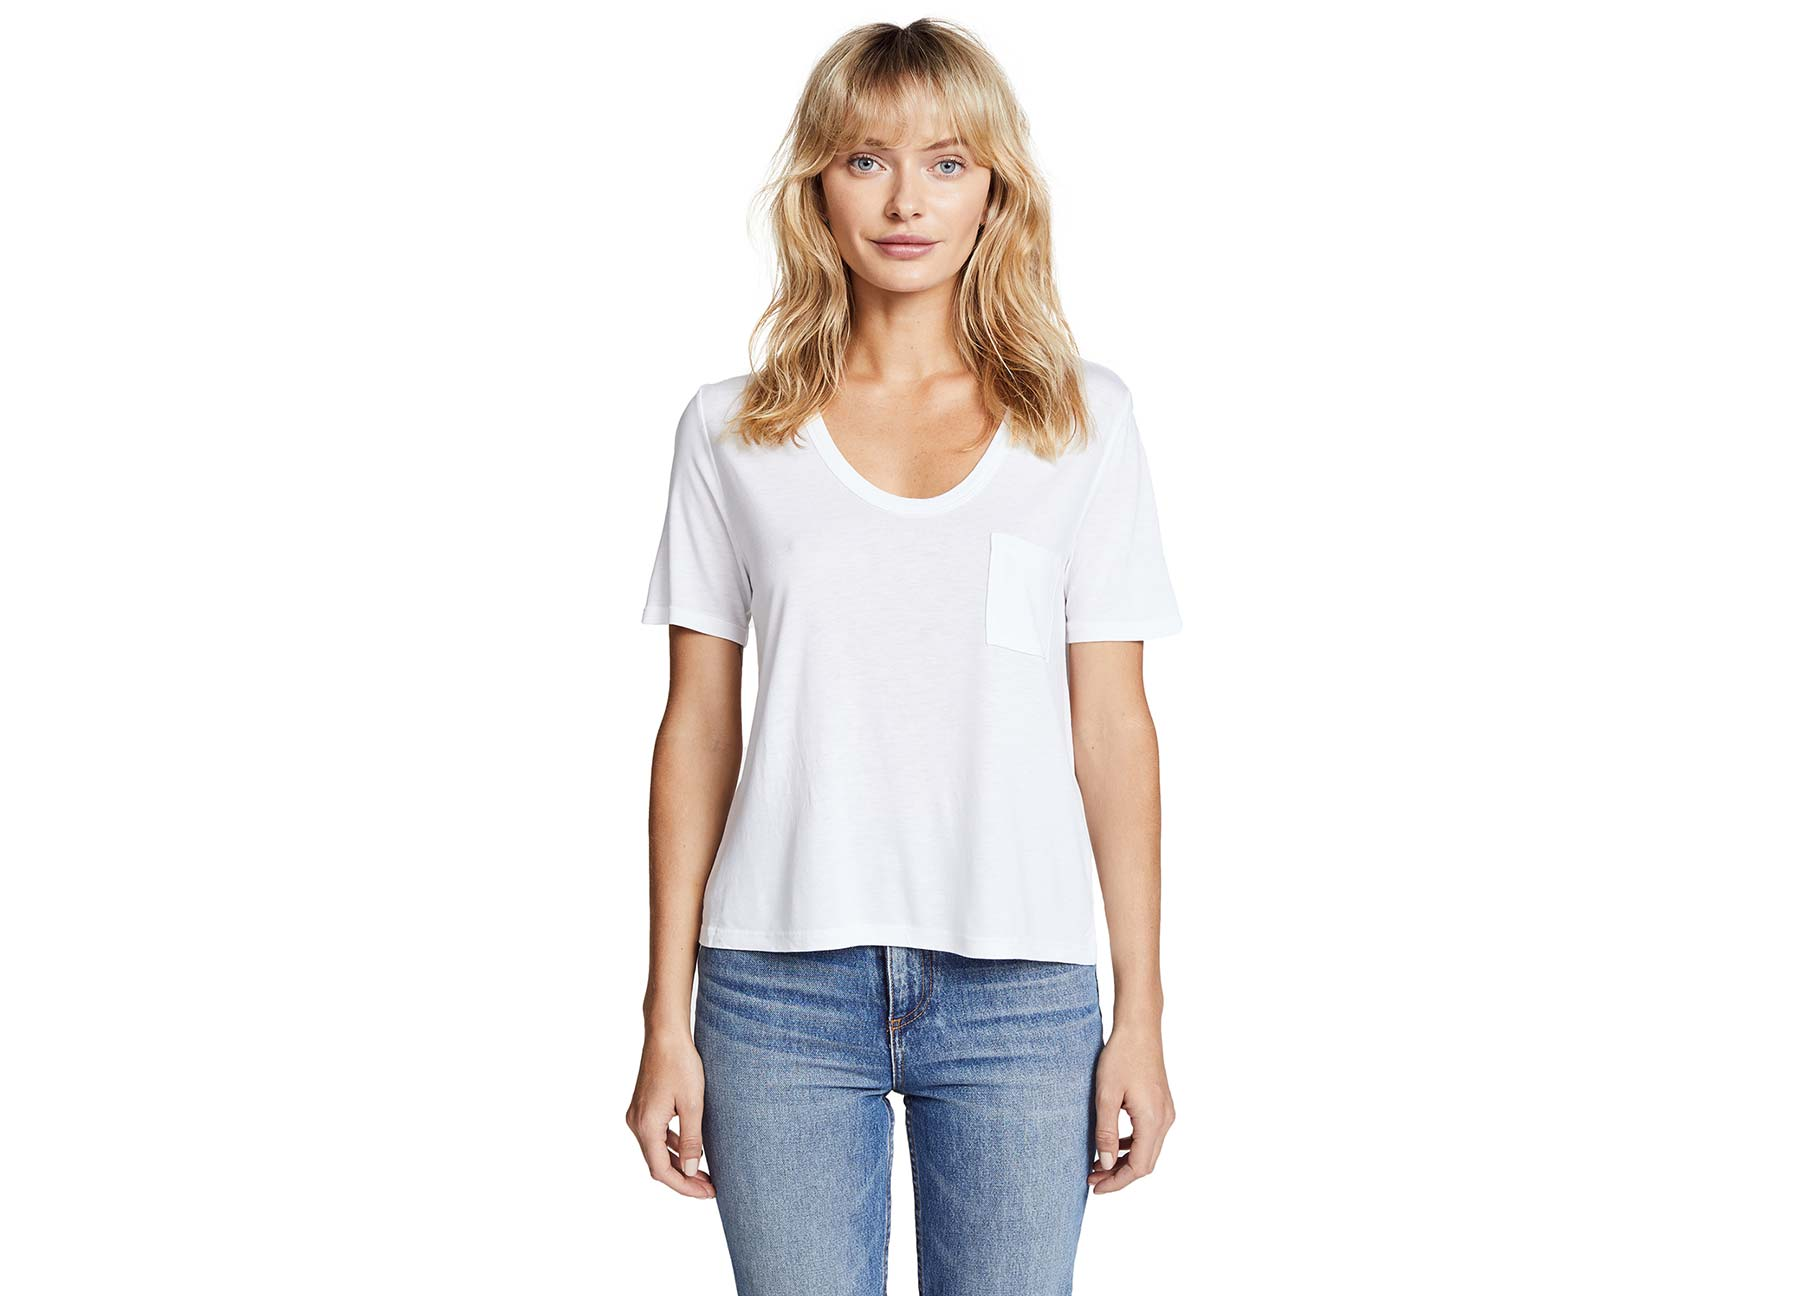 d86978055b6 The Best Black Friday and Cyber Monday Deals at Shopbop